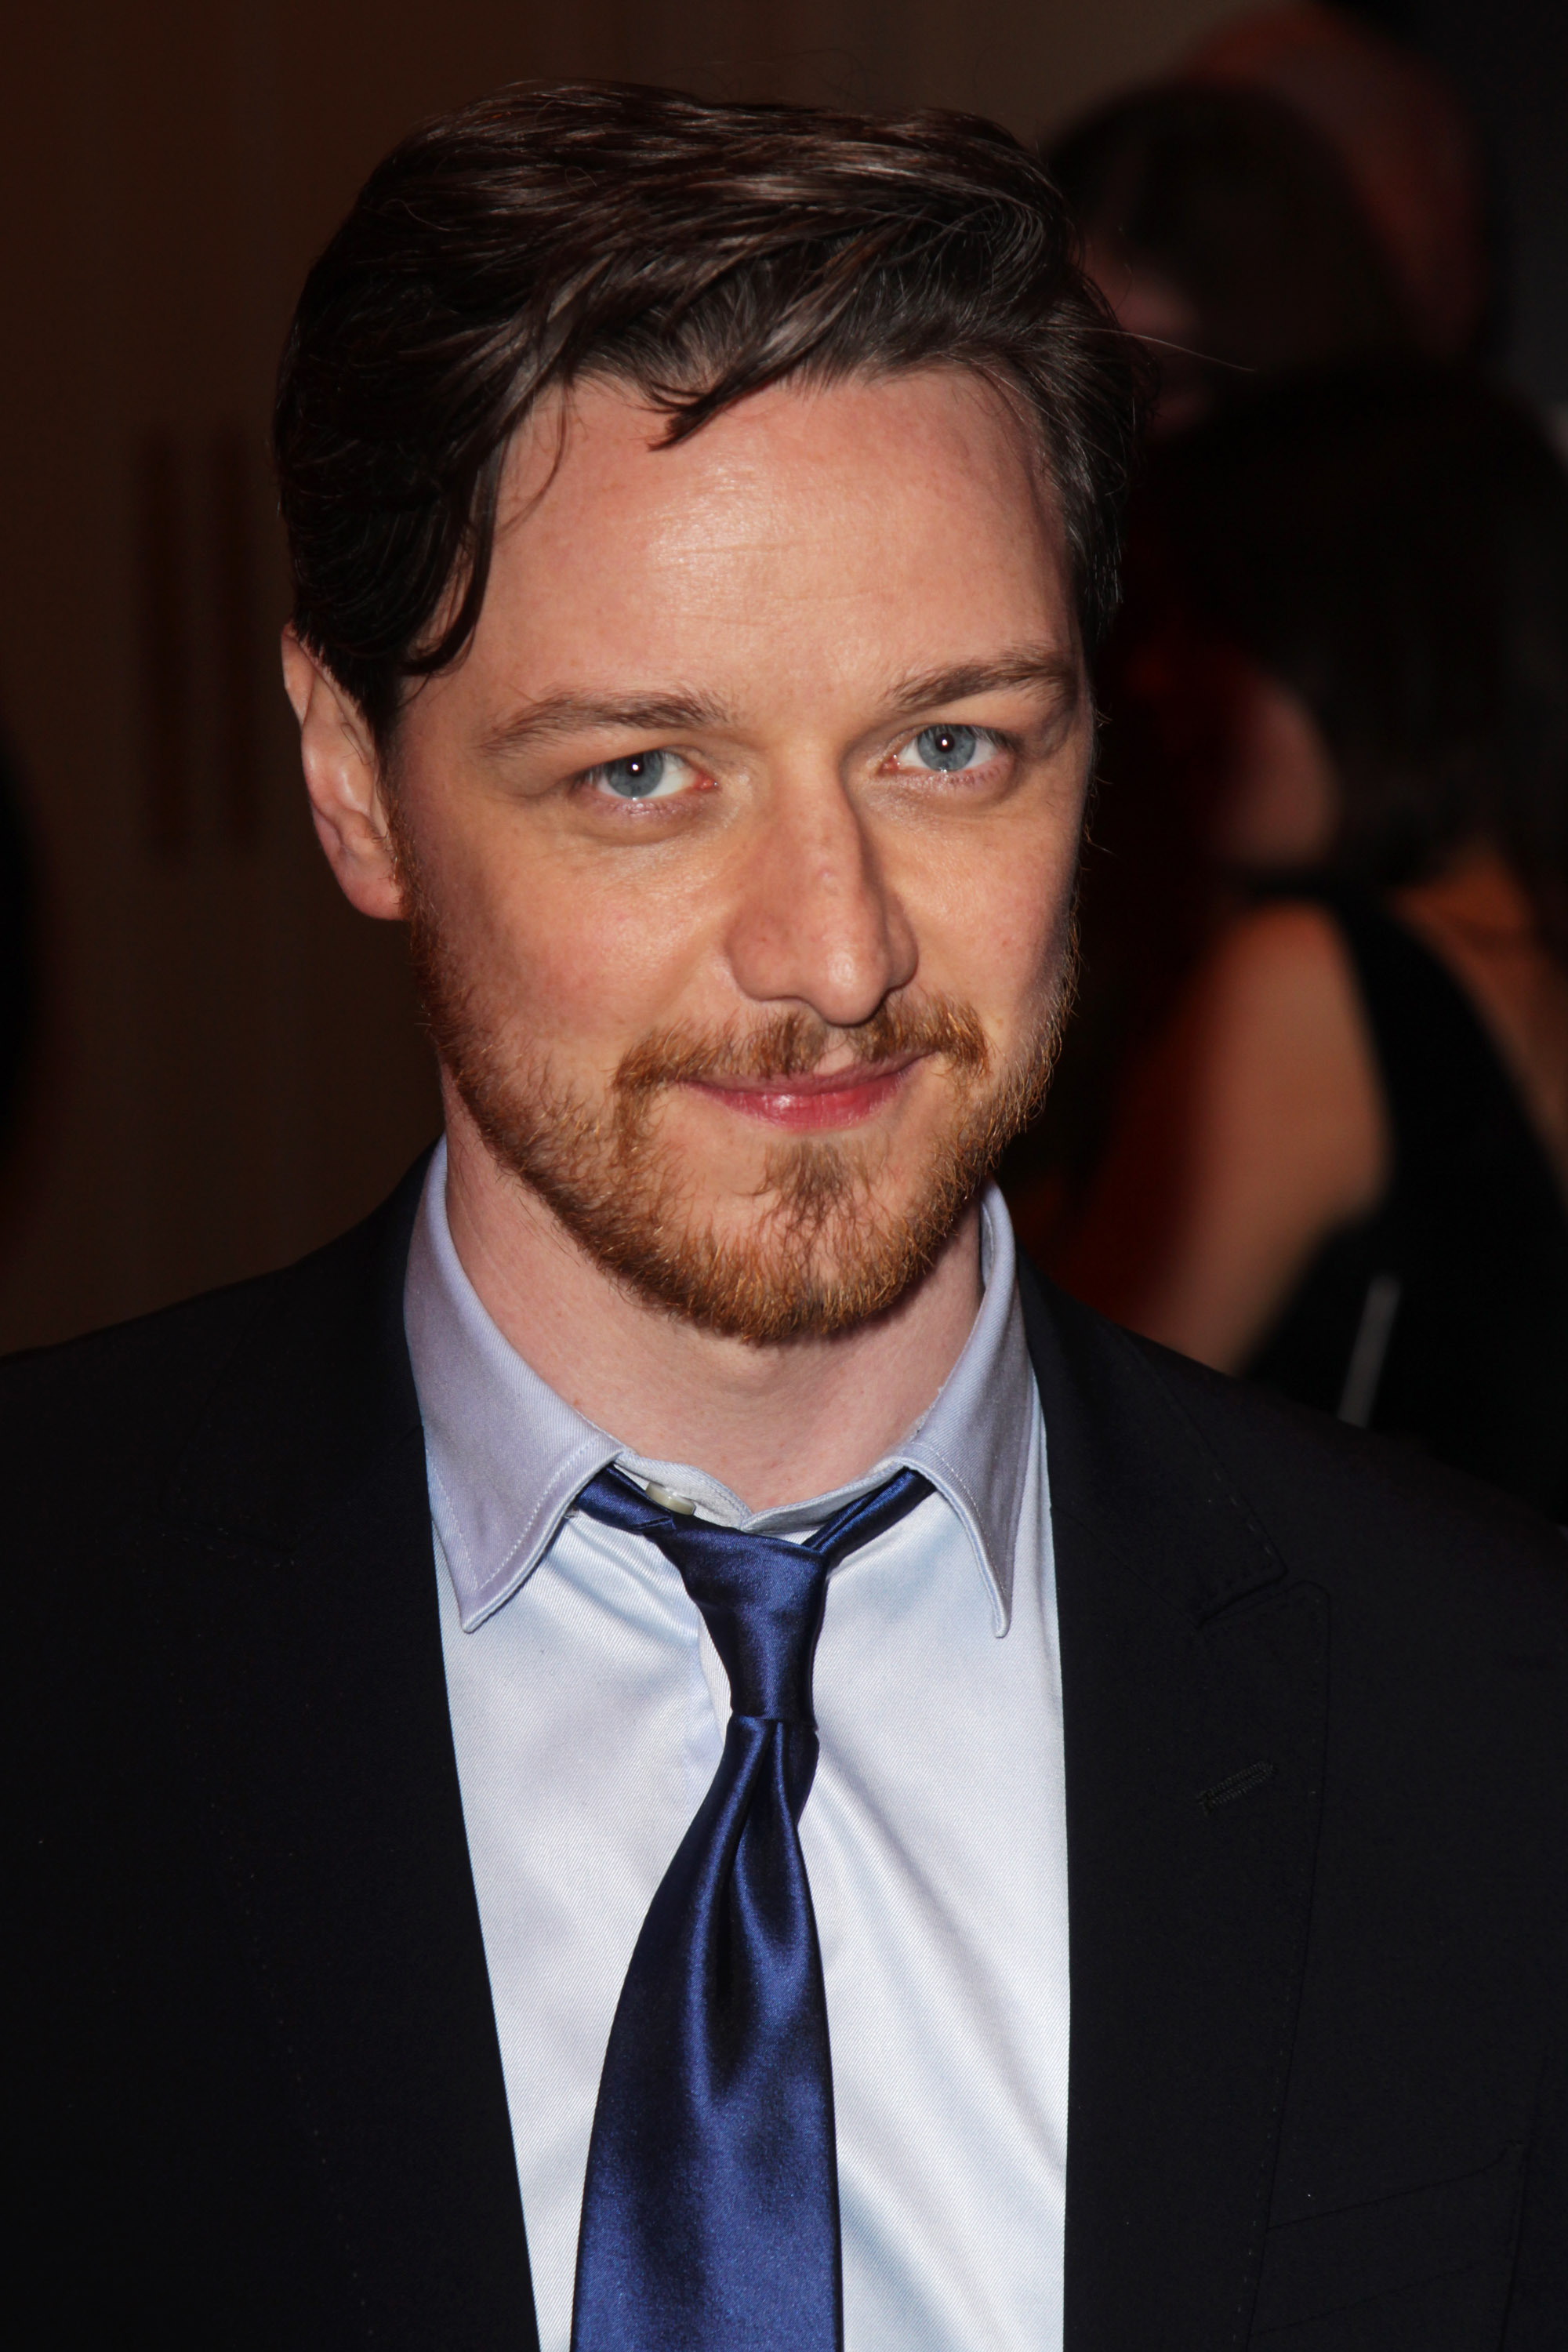 James McAvoy Wallpapers Images Photos Pictures Backgrounds